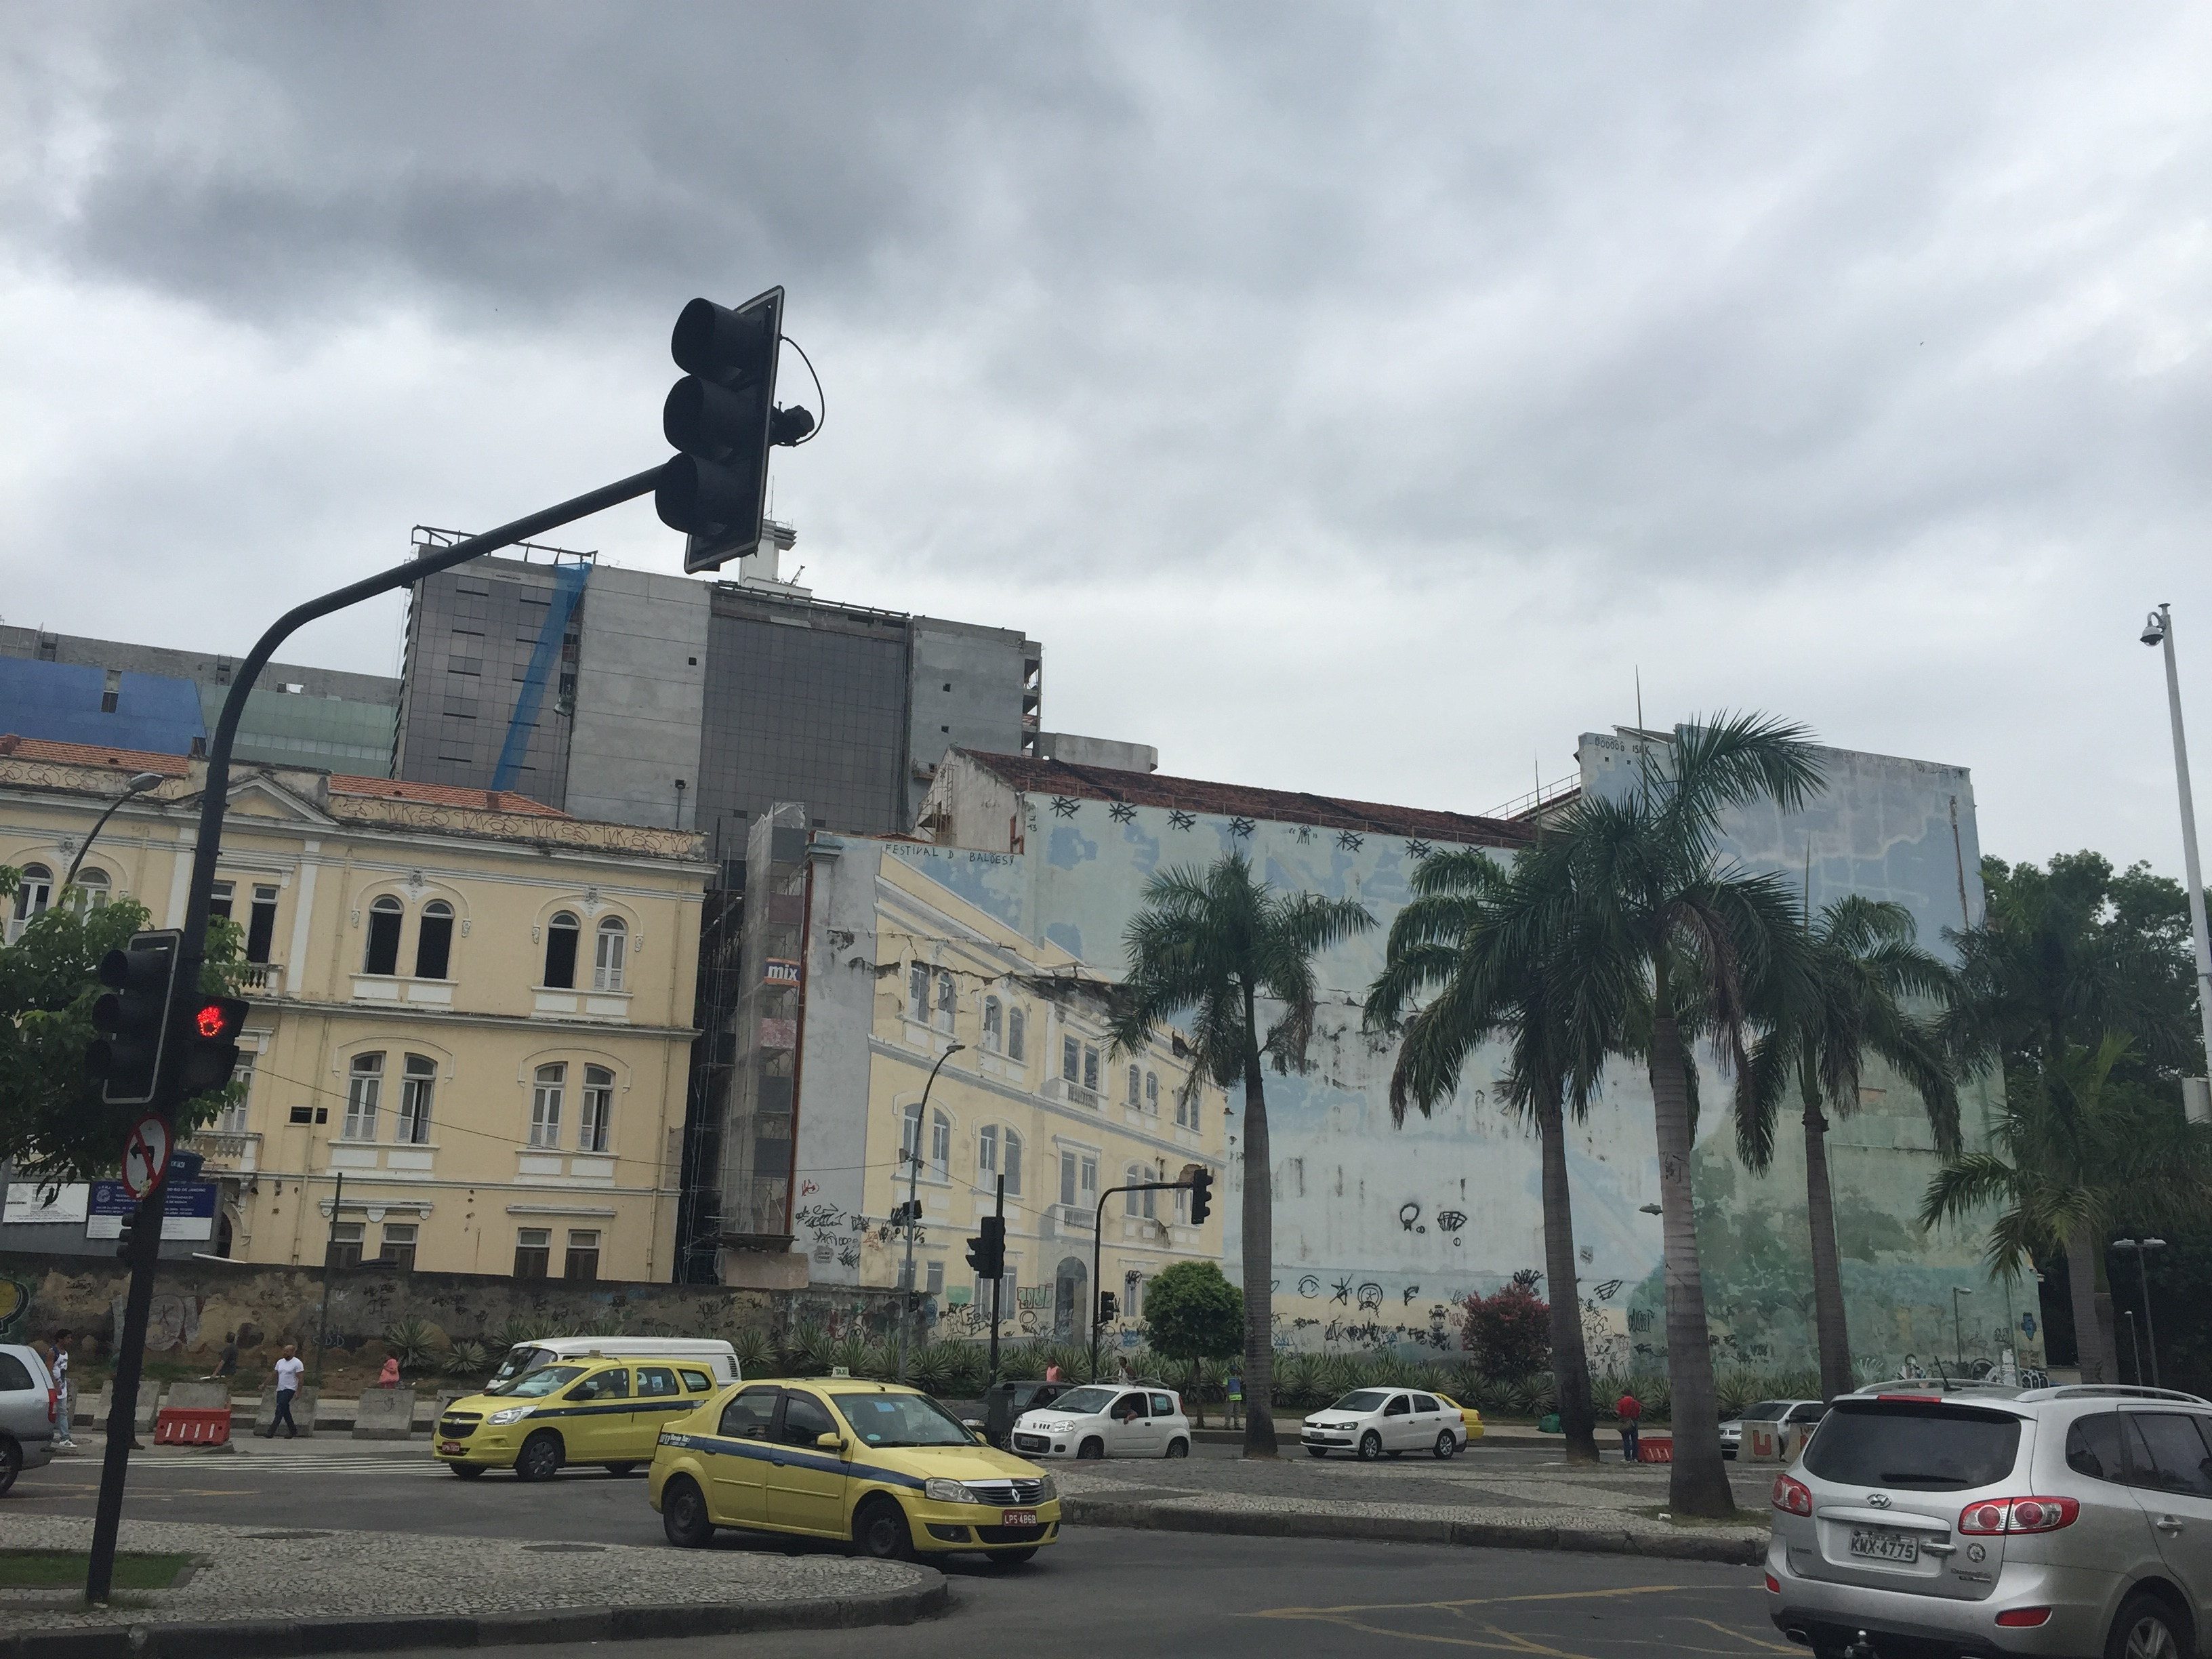 Lapa, Rio, the home of samba de gafieira, glorying in itself through tromp l'oeil murals